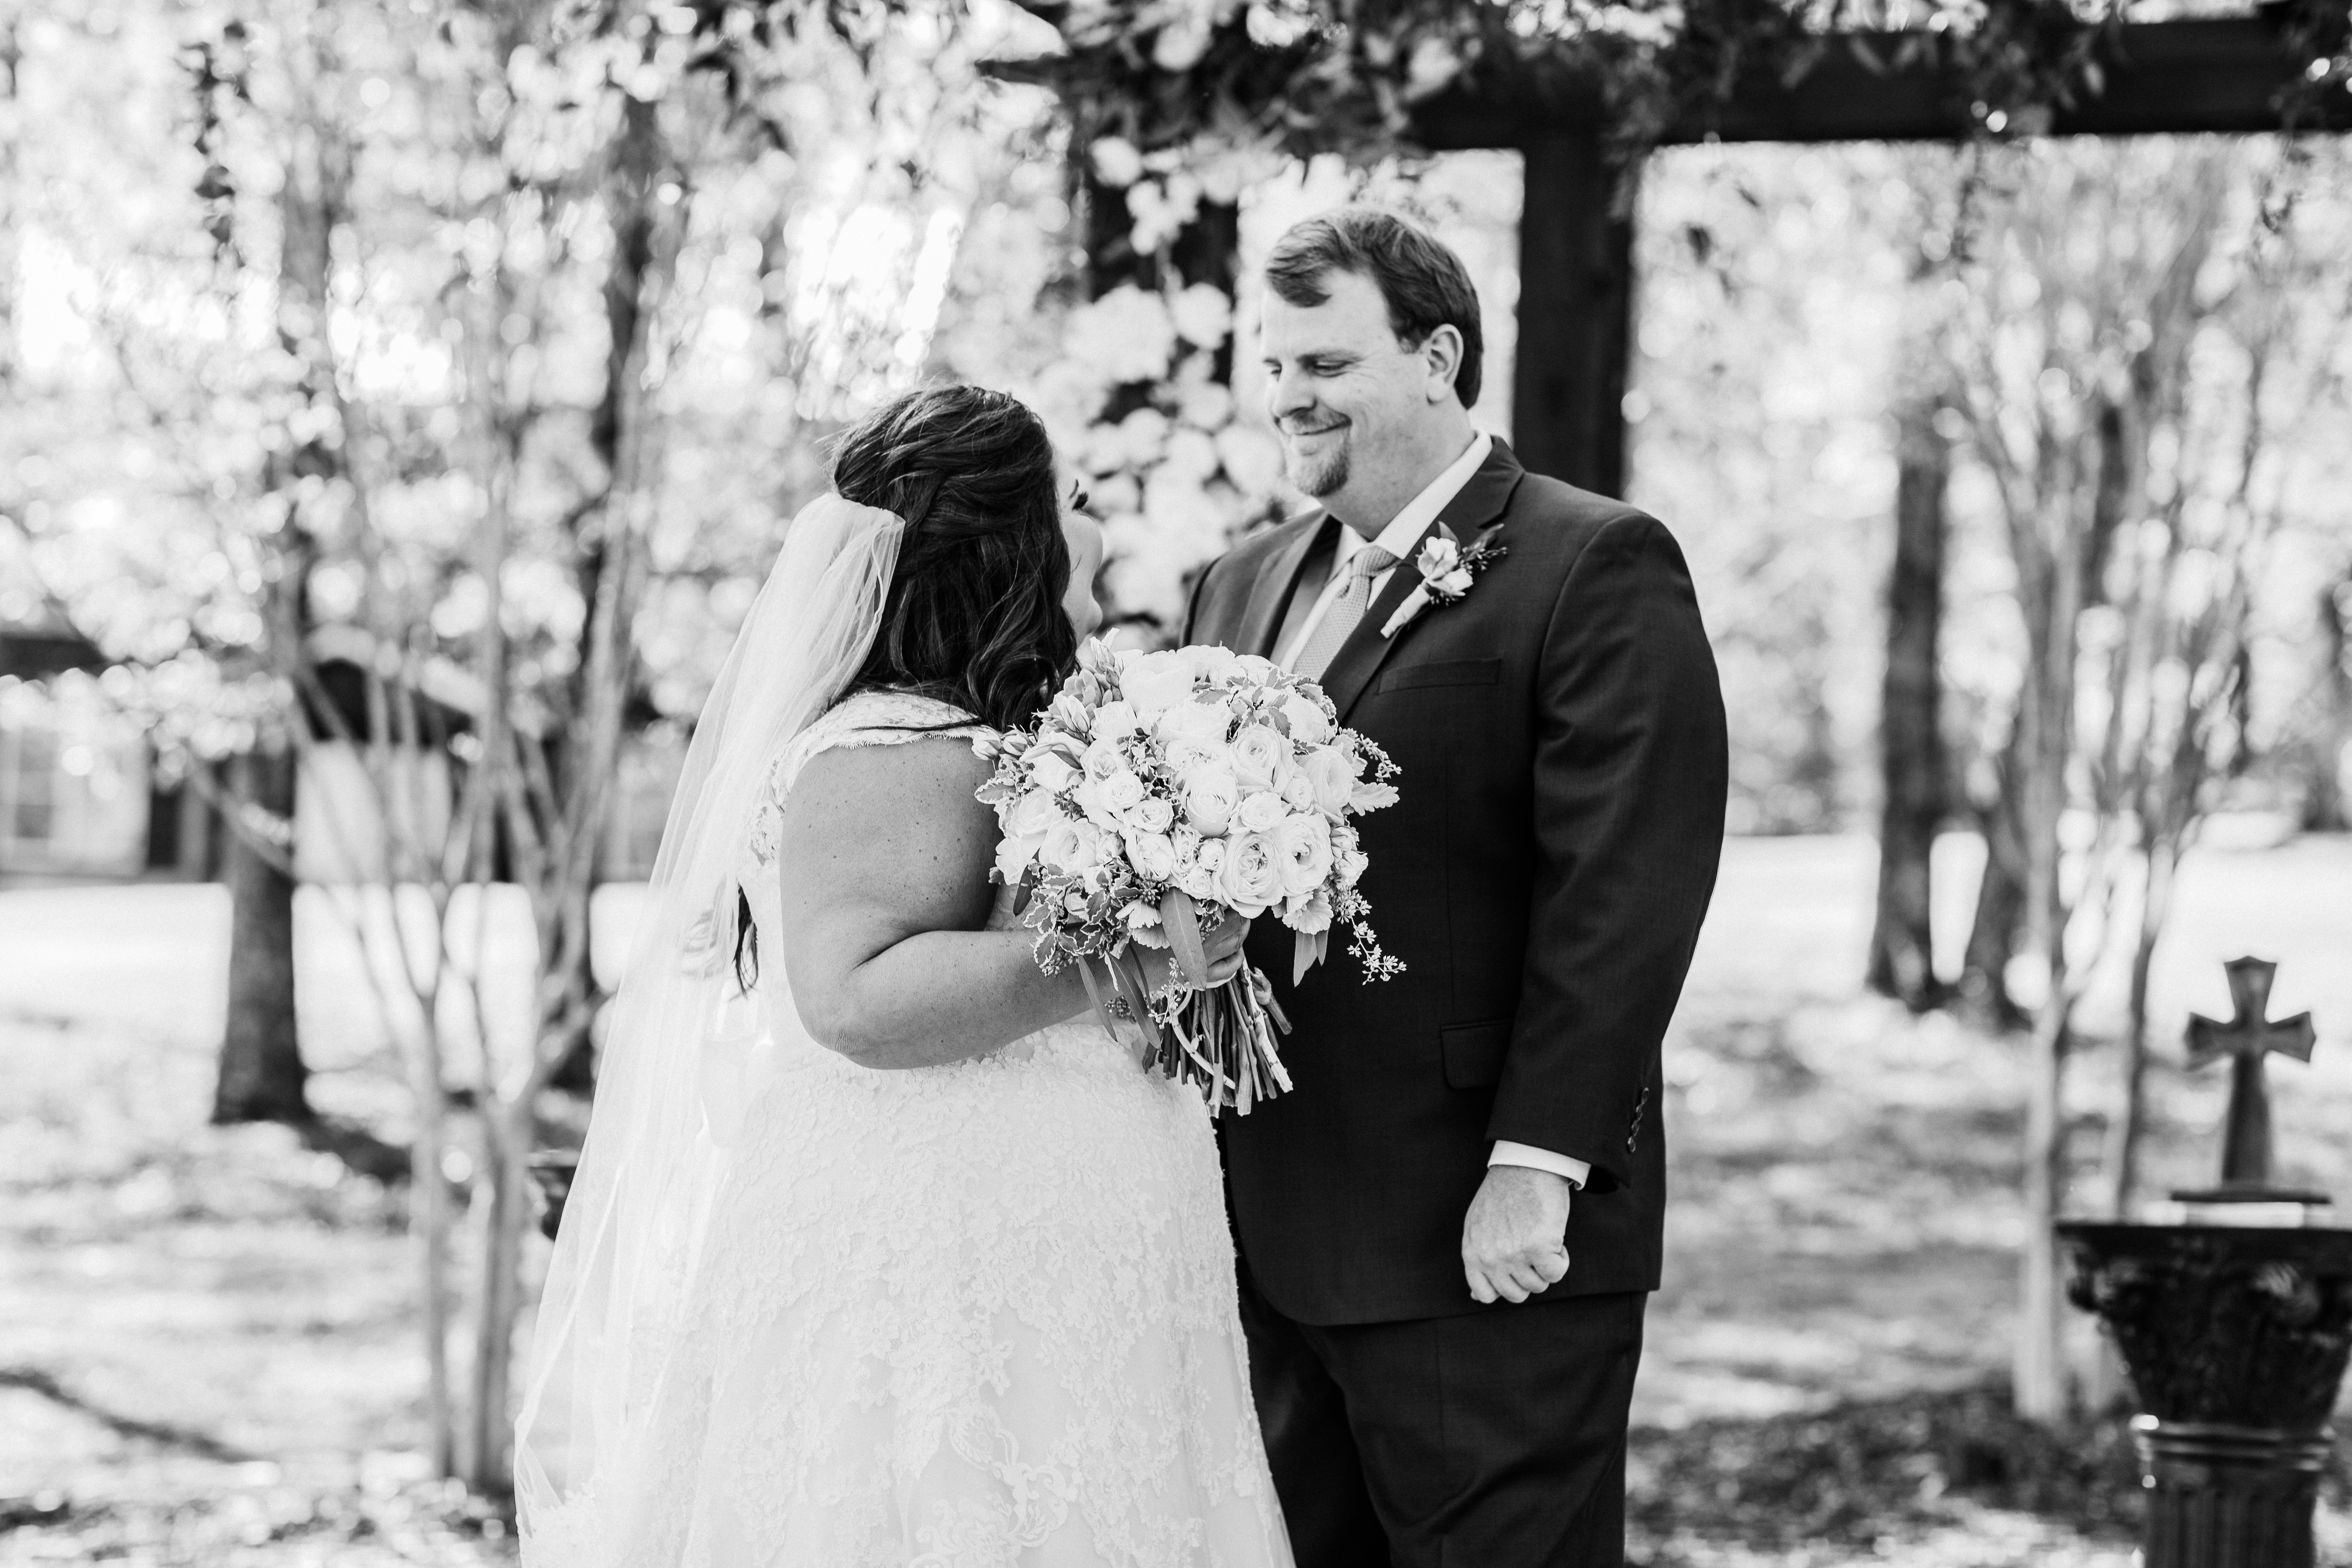 CAHOON_WEDDING_BIRMINGHAM_ALABAMA_WEDDING_PHOTOGRAPHY_48